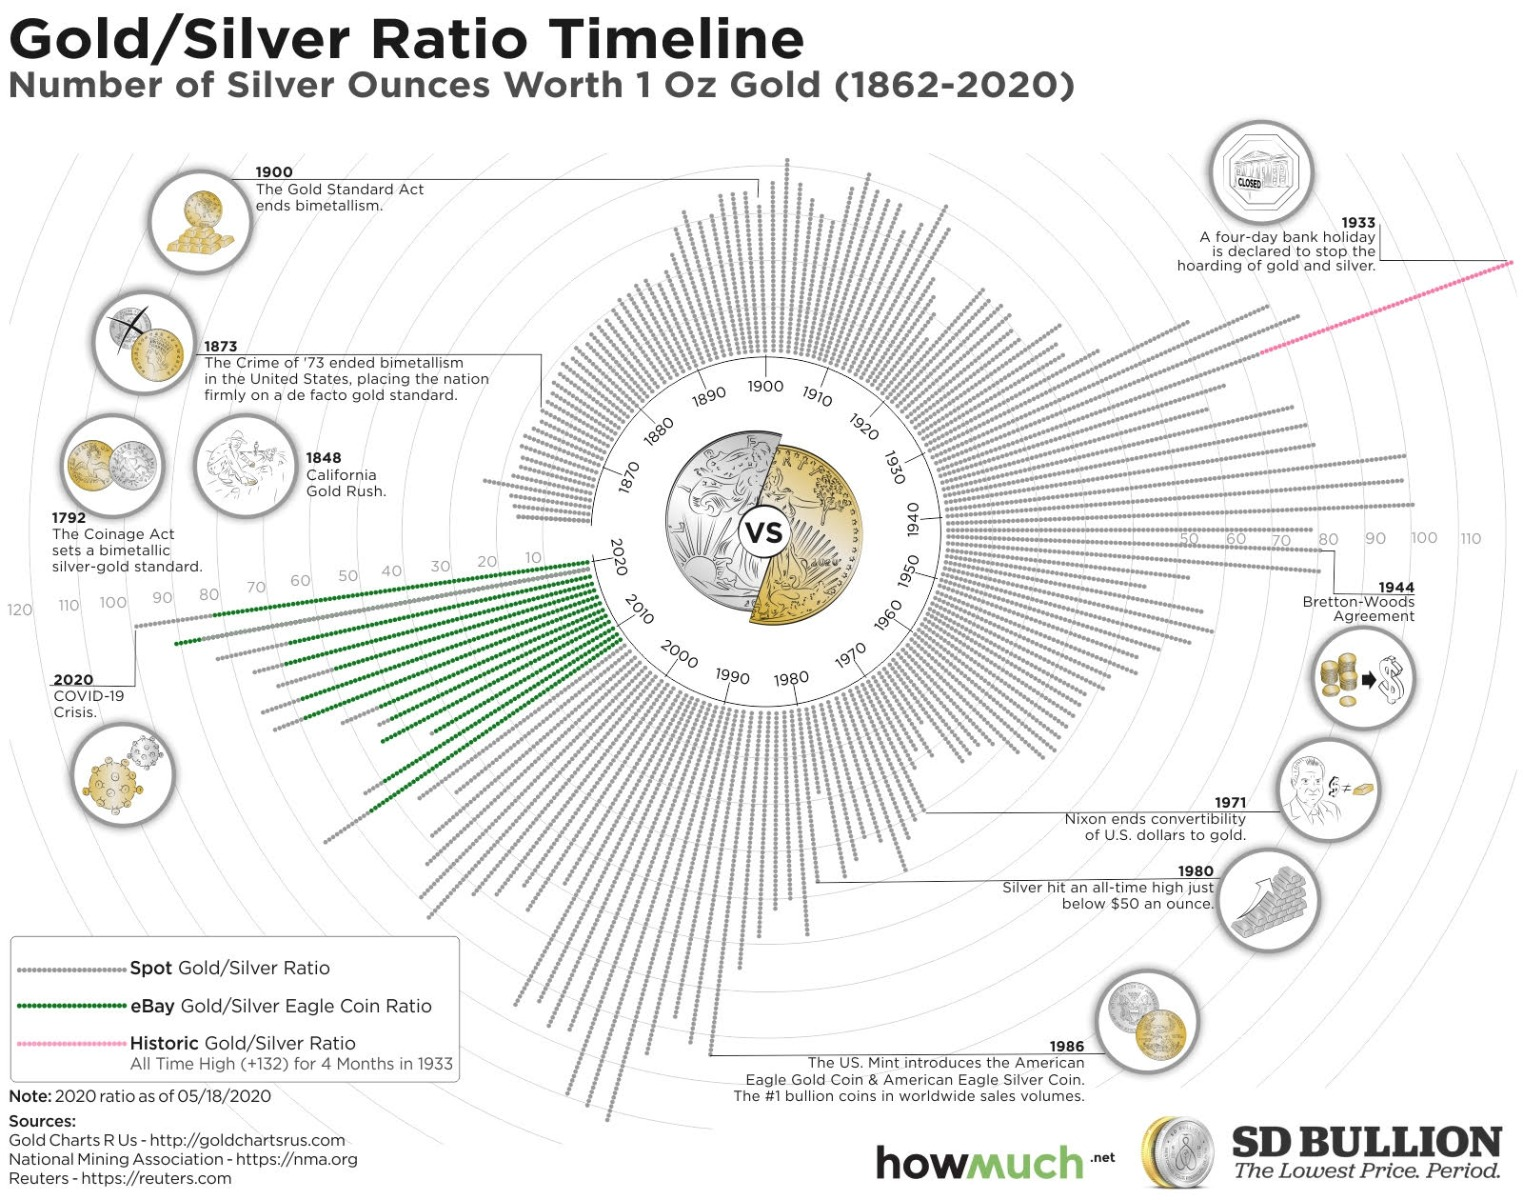 Gold/Silver Ratio Timeline (1862-2020)